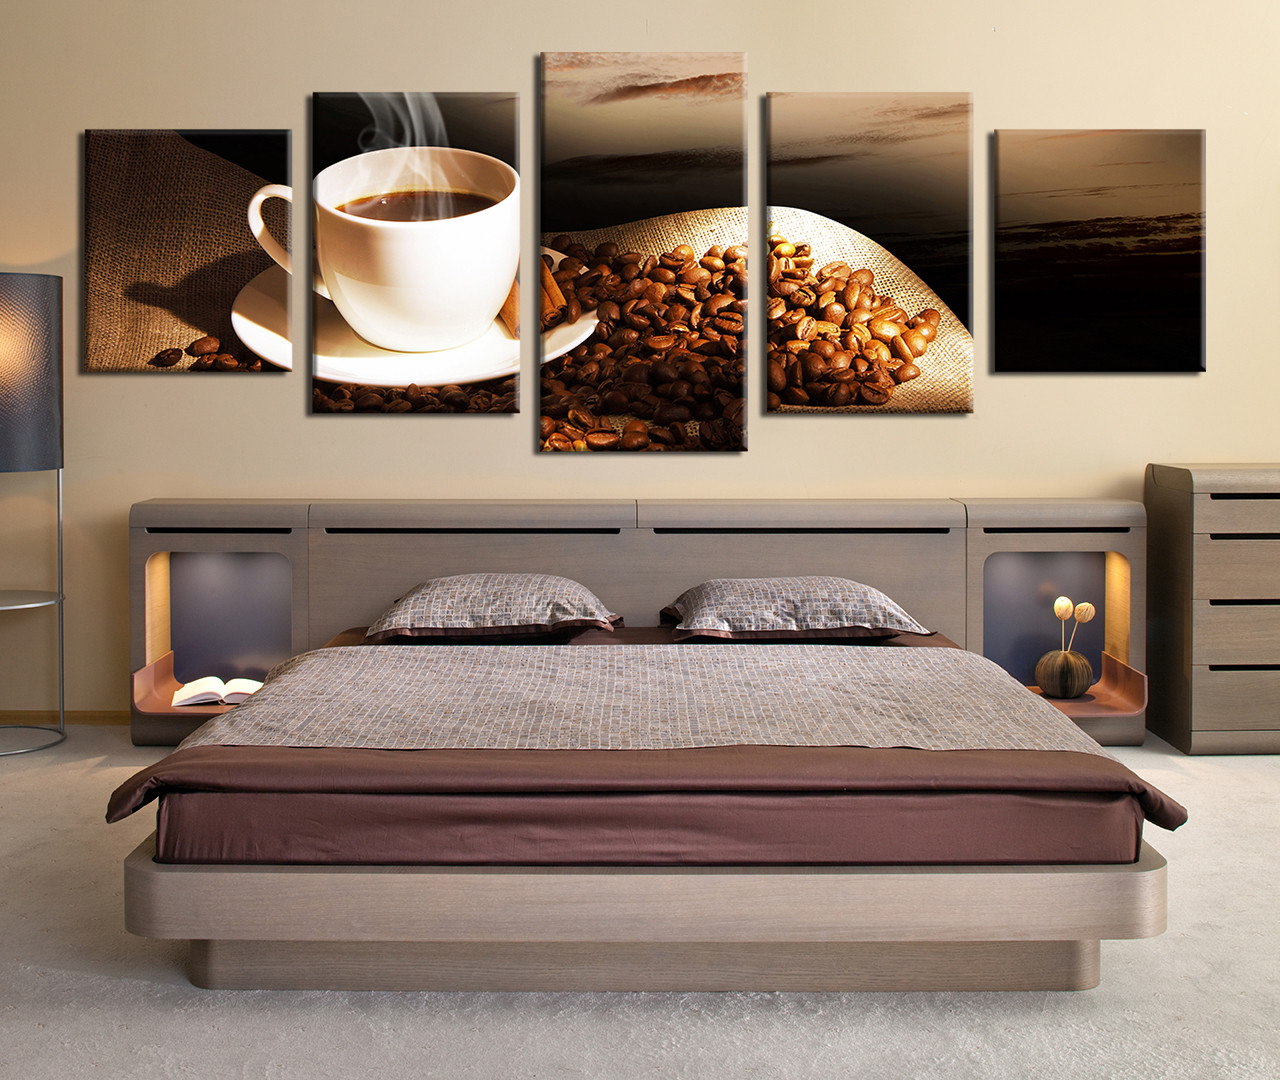 Set Of 3 Coffee Cup Canvas Wraps: 5 Piece Canvas Wall Art, Coffee Multi Panel Art, Coffee